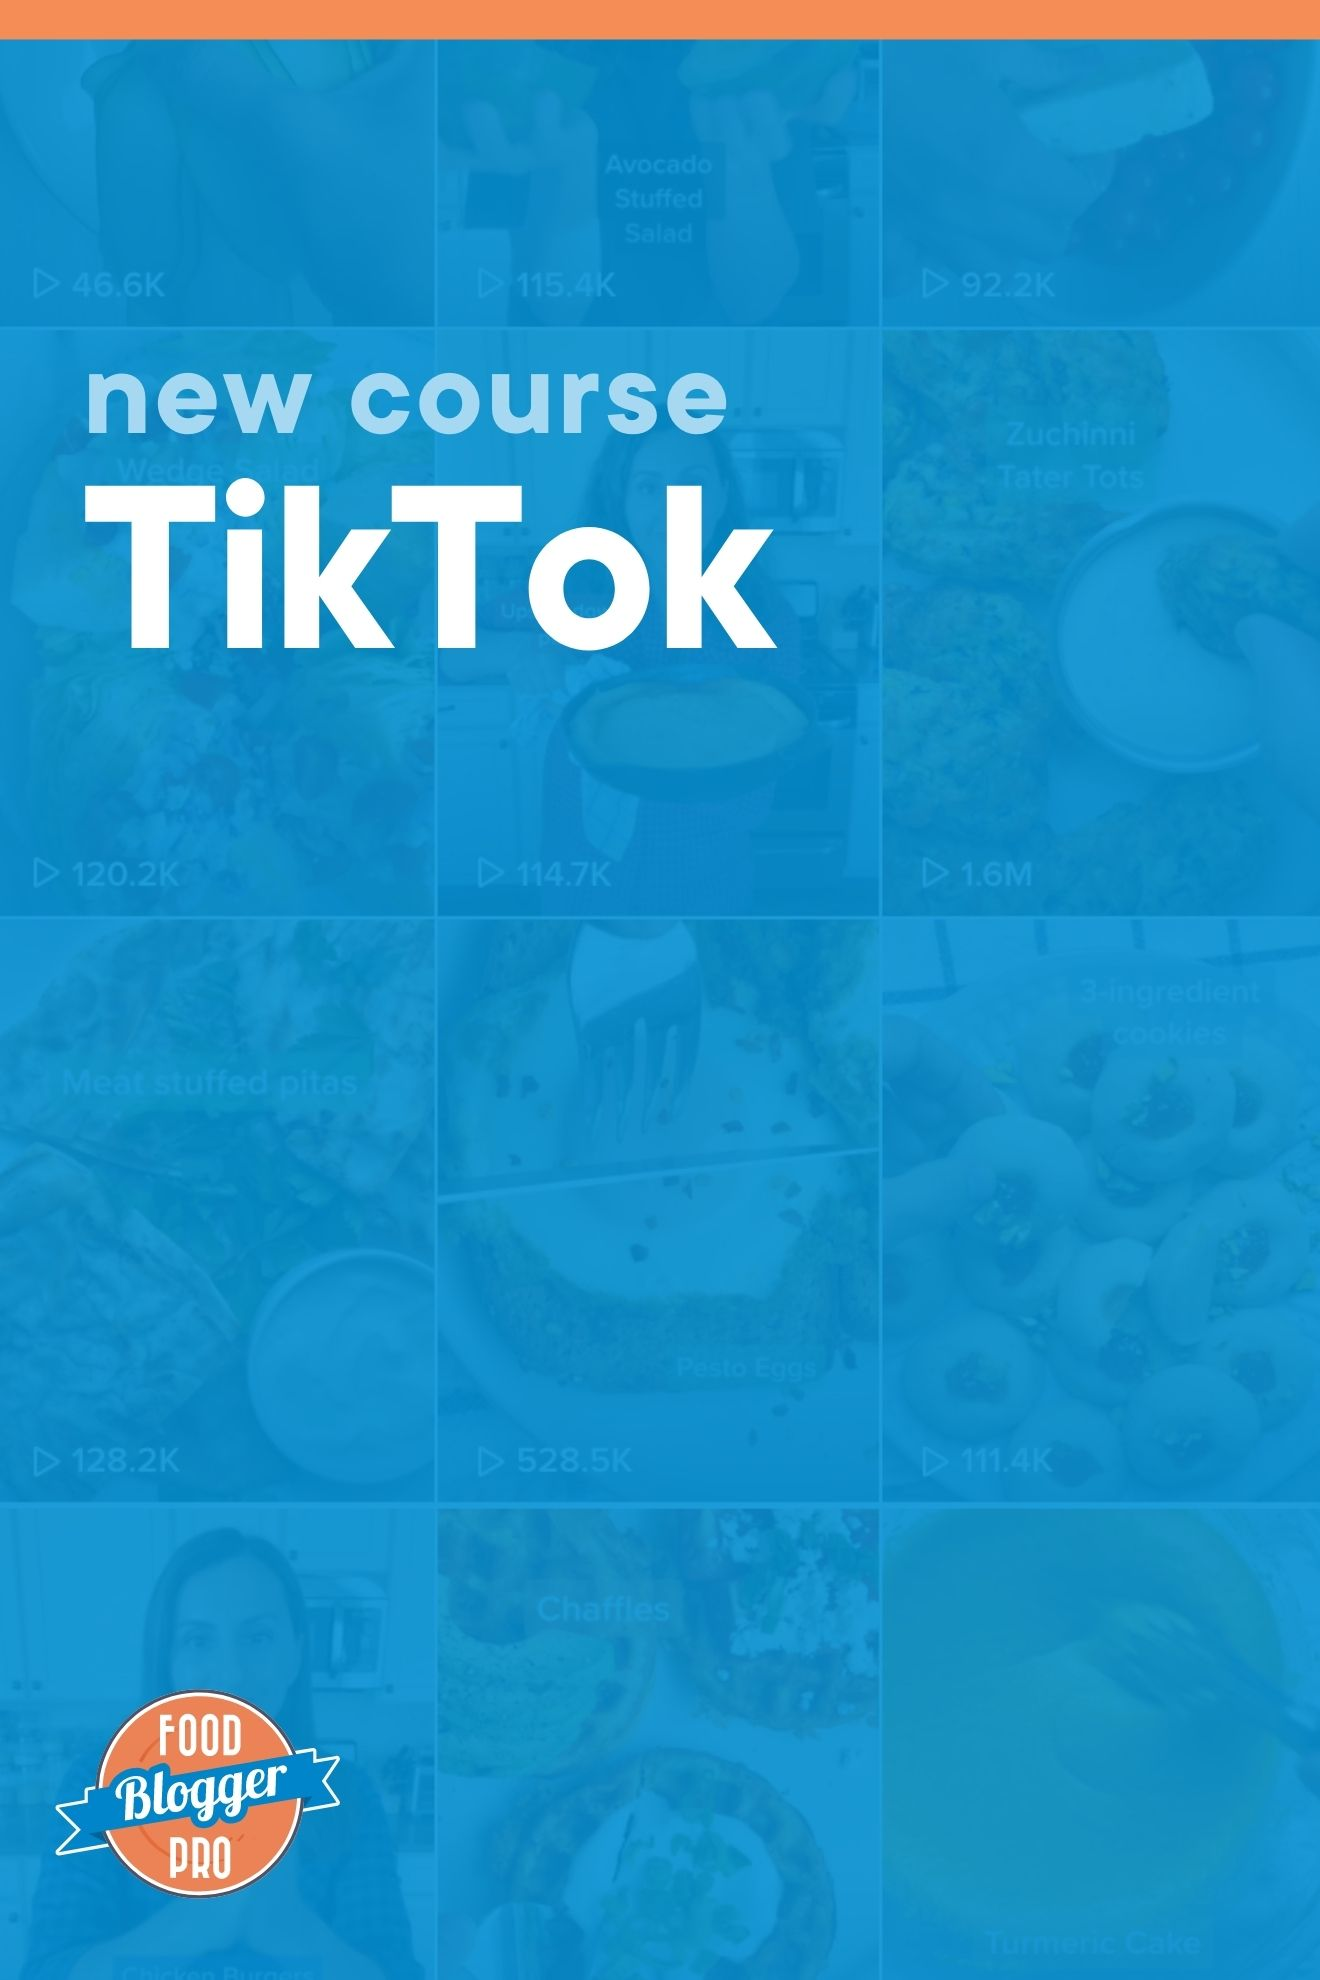 Blue graphic of Tiktok feed that reads 'New Course: TikTok' with Food Blogger Pro logo